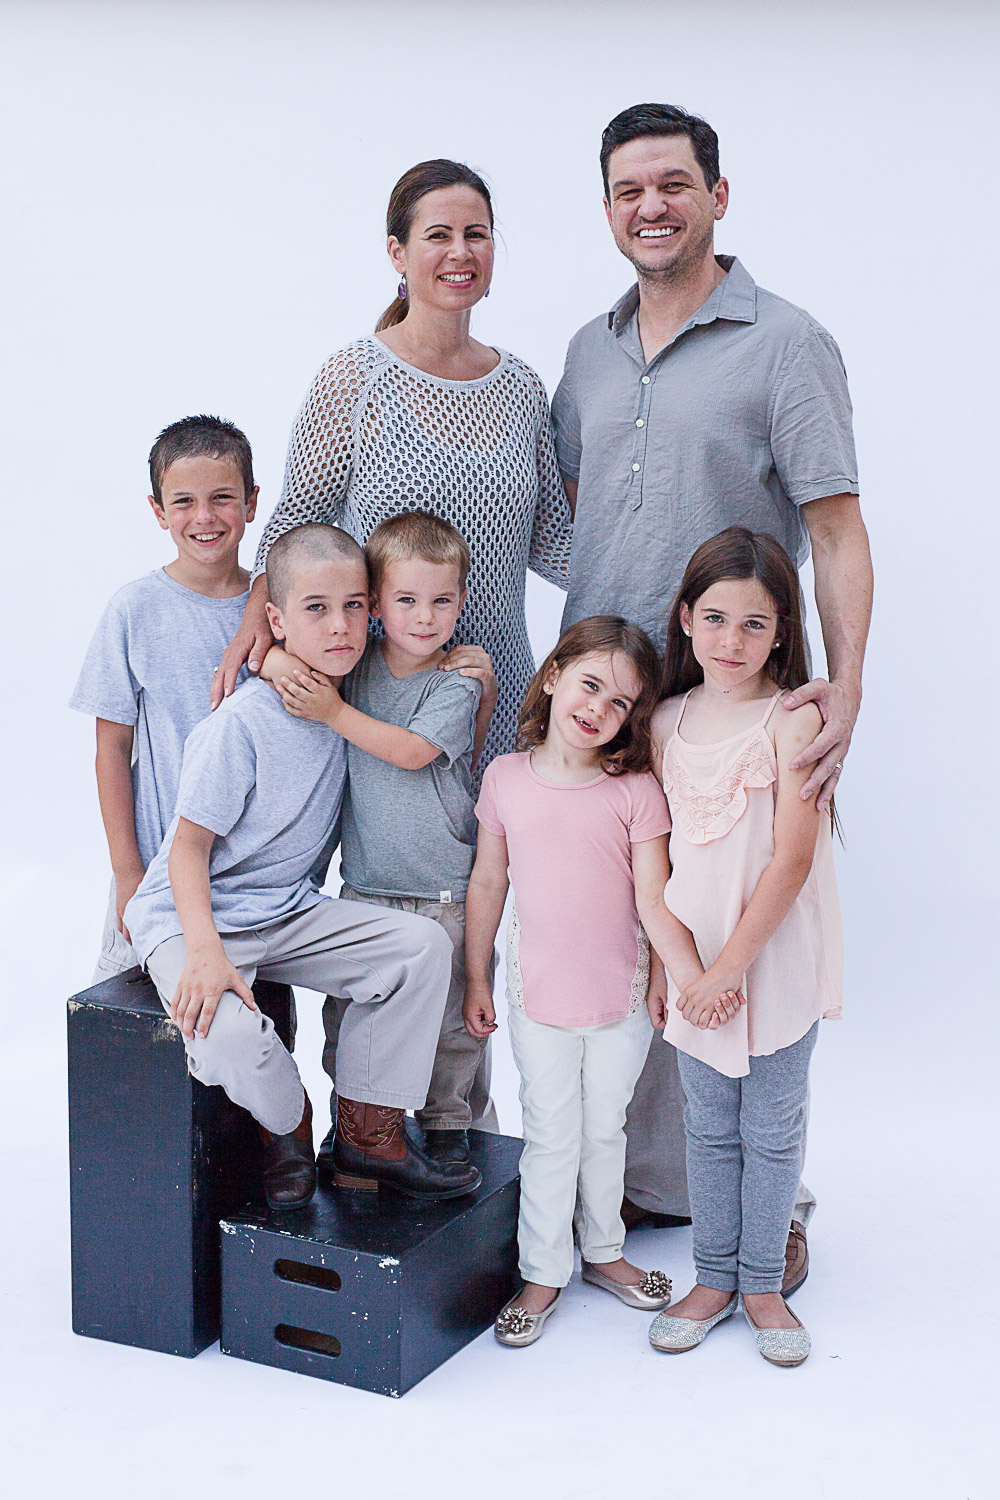 georgetown_family_portrait_large_group-3.JPG